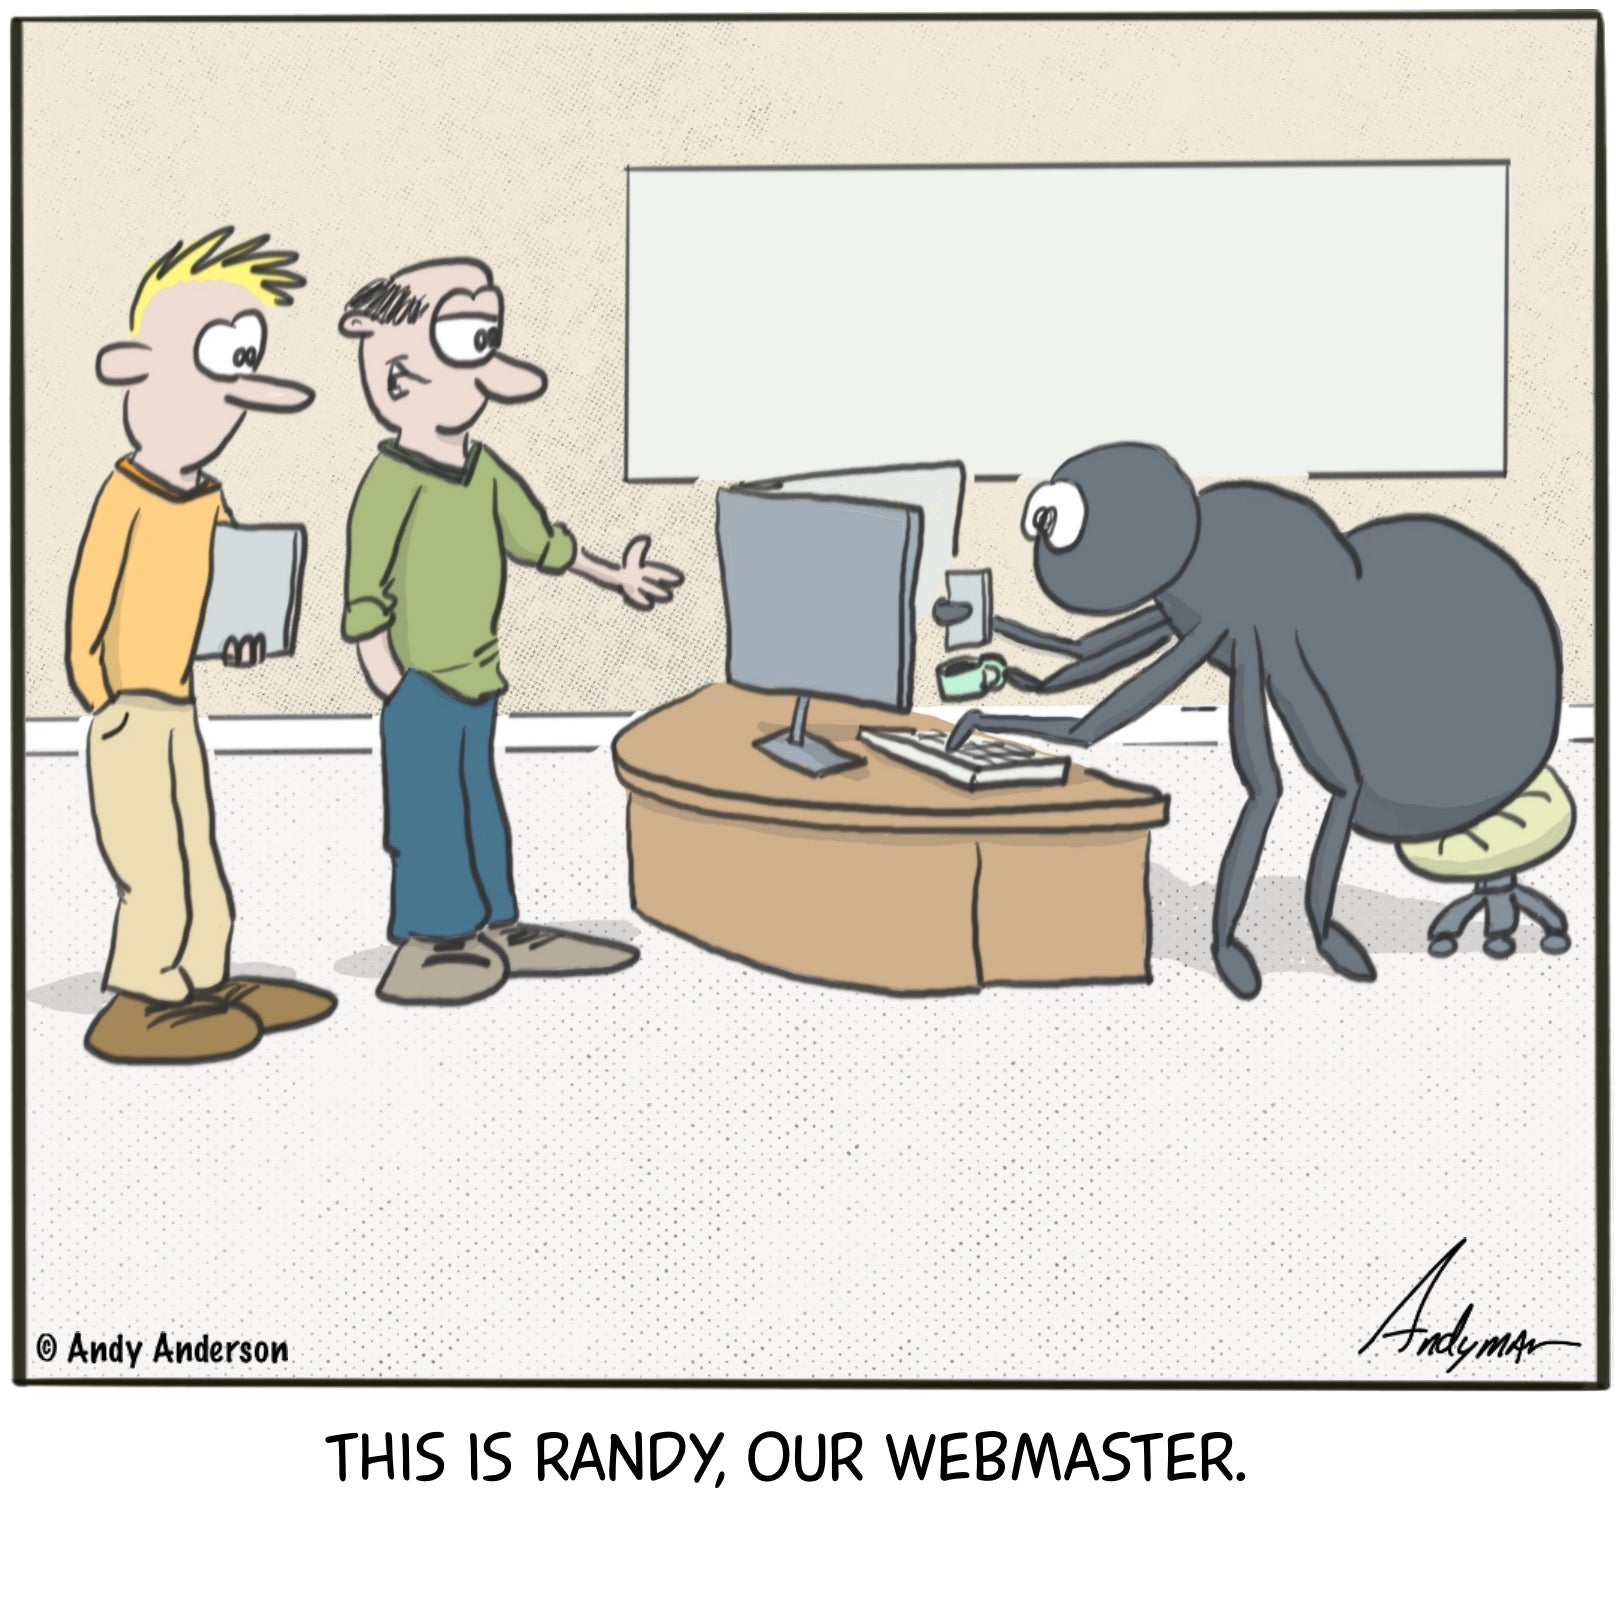 Cartoon about a spider working as a webmaster by Andy Anderson